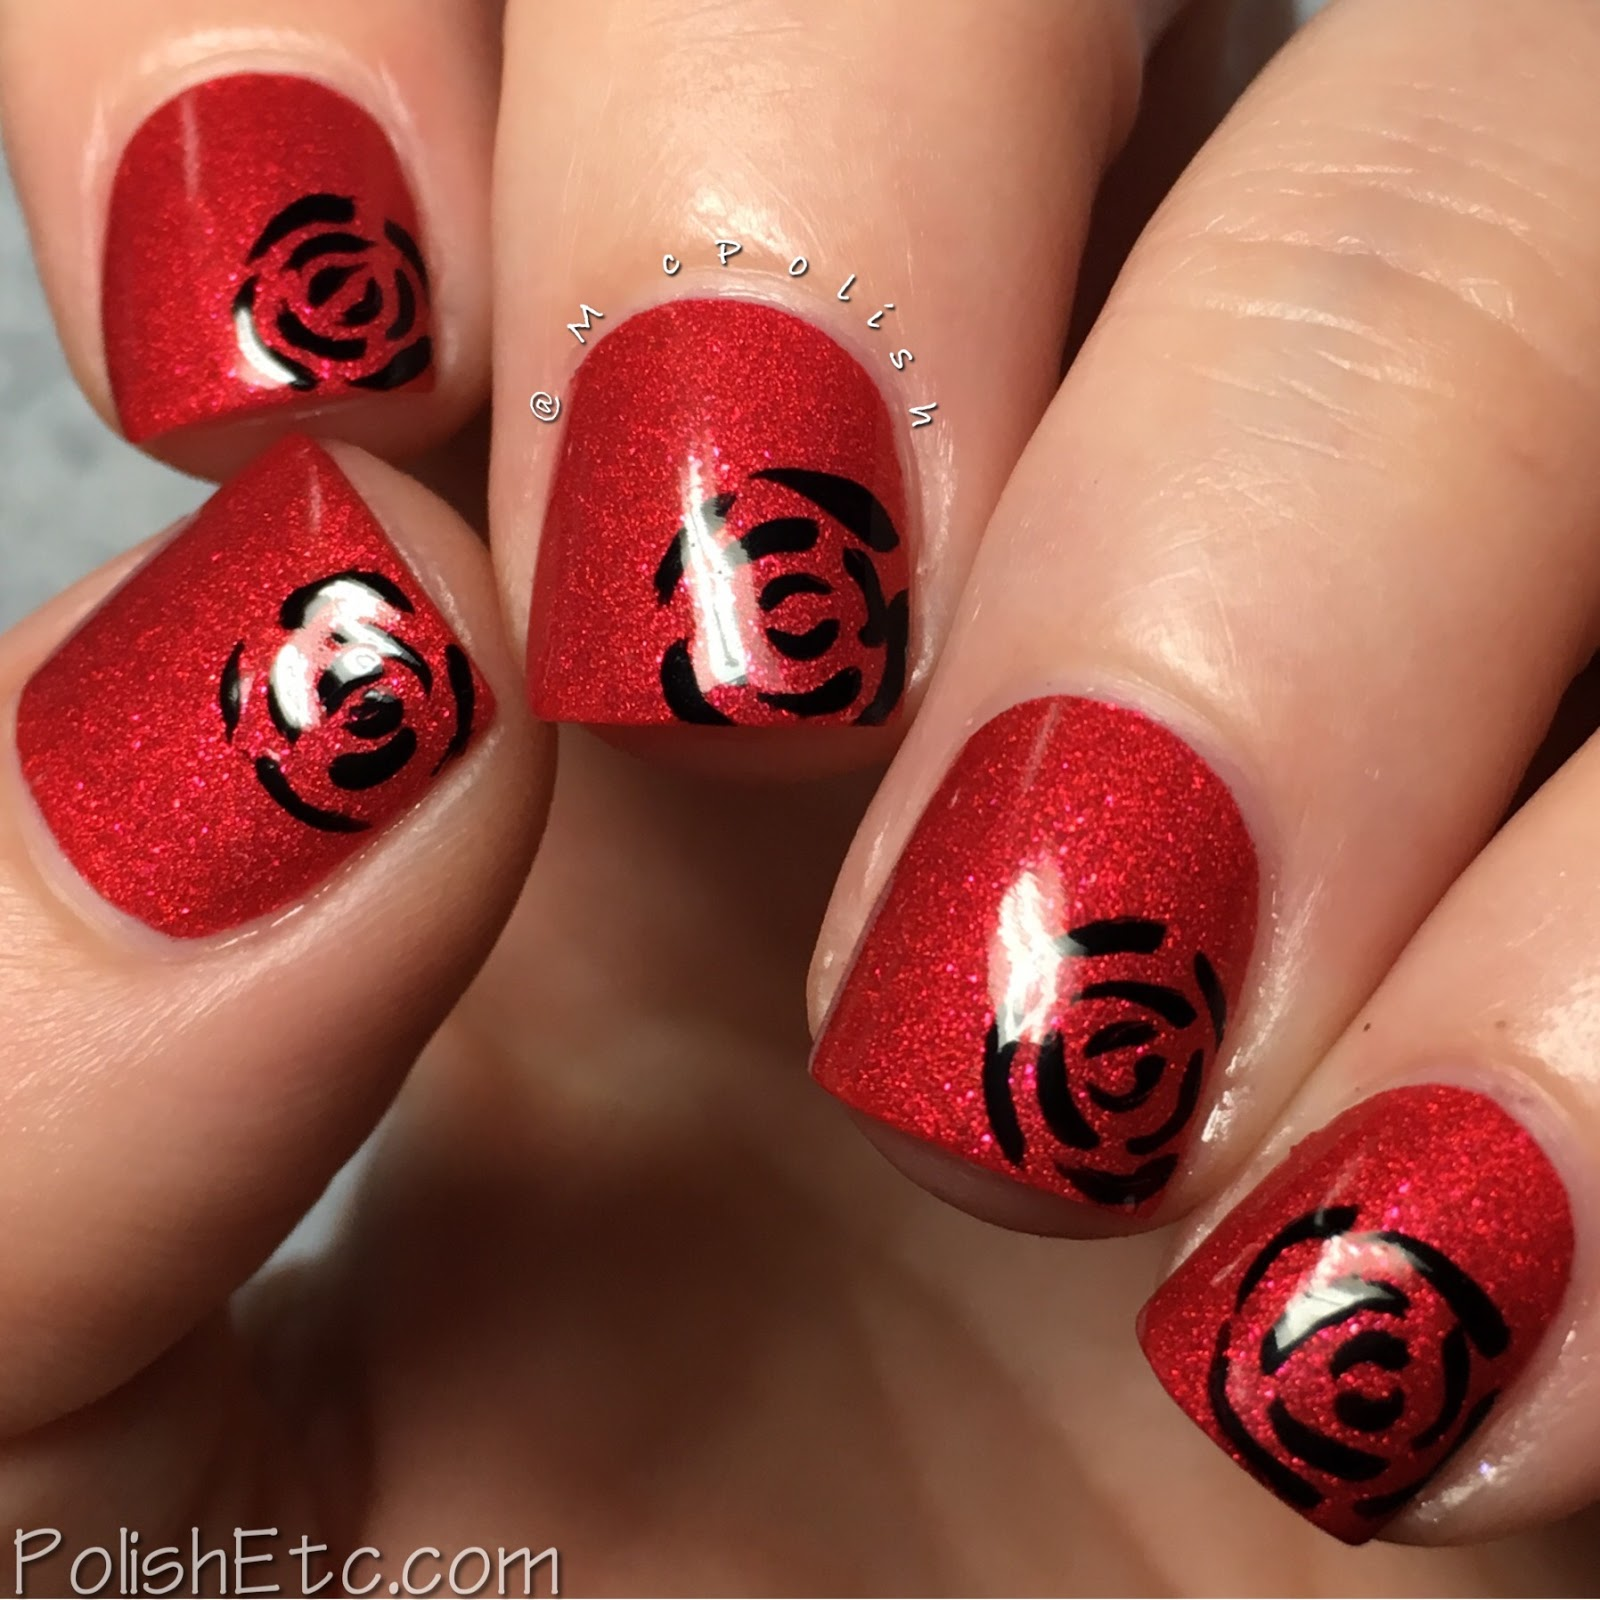 Red Nails for the #31DC2017Weekly - McPolish - Zoya Amal